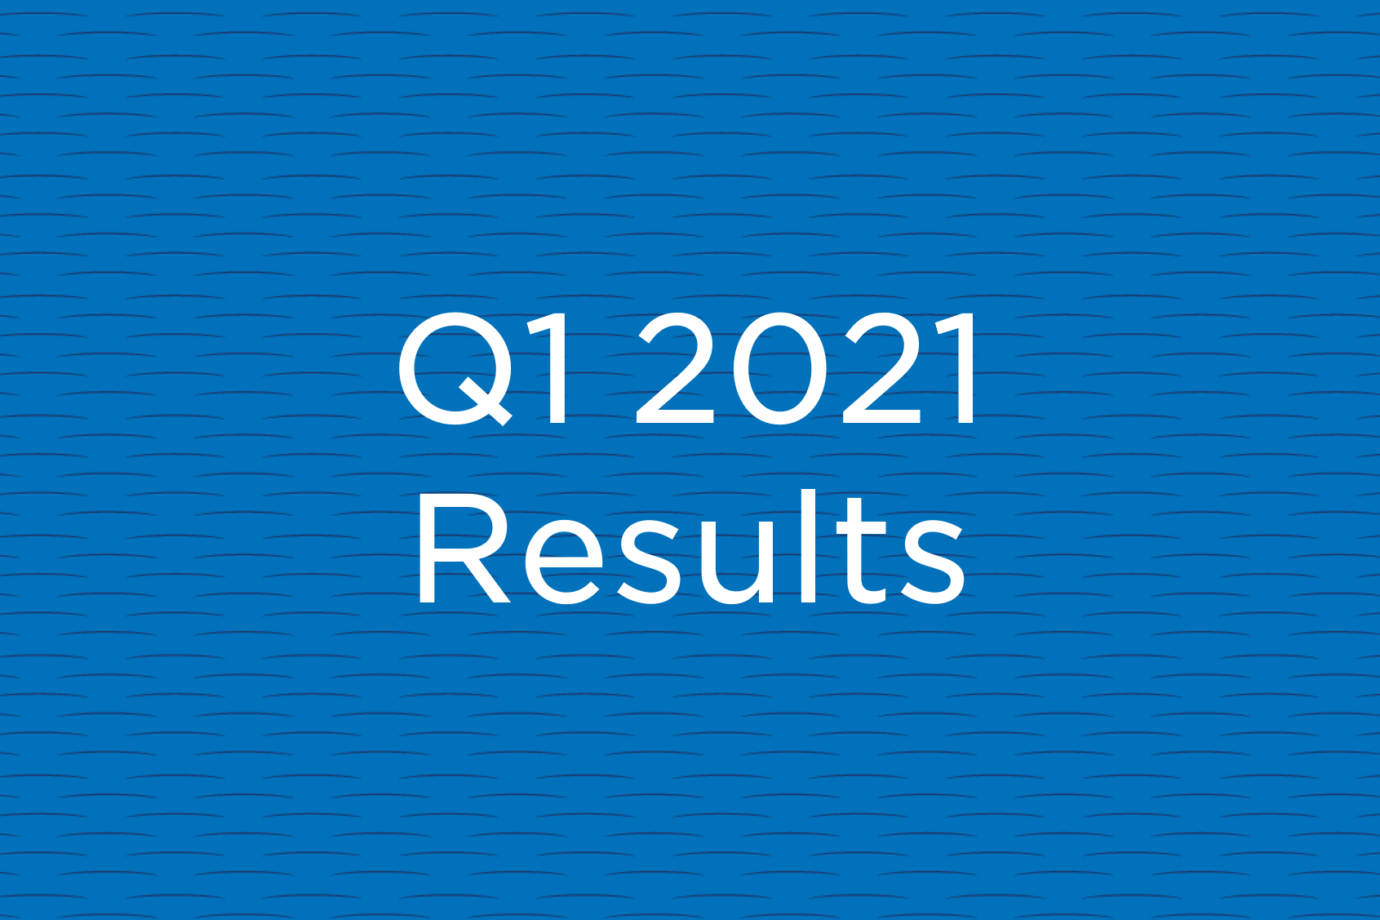 Q1 2021 Results Graphic